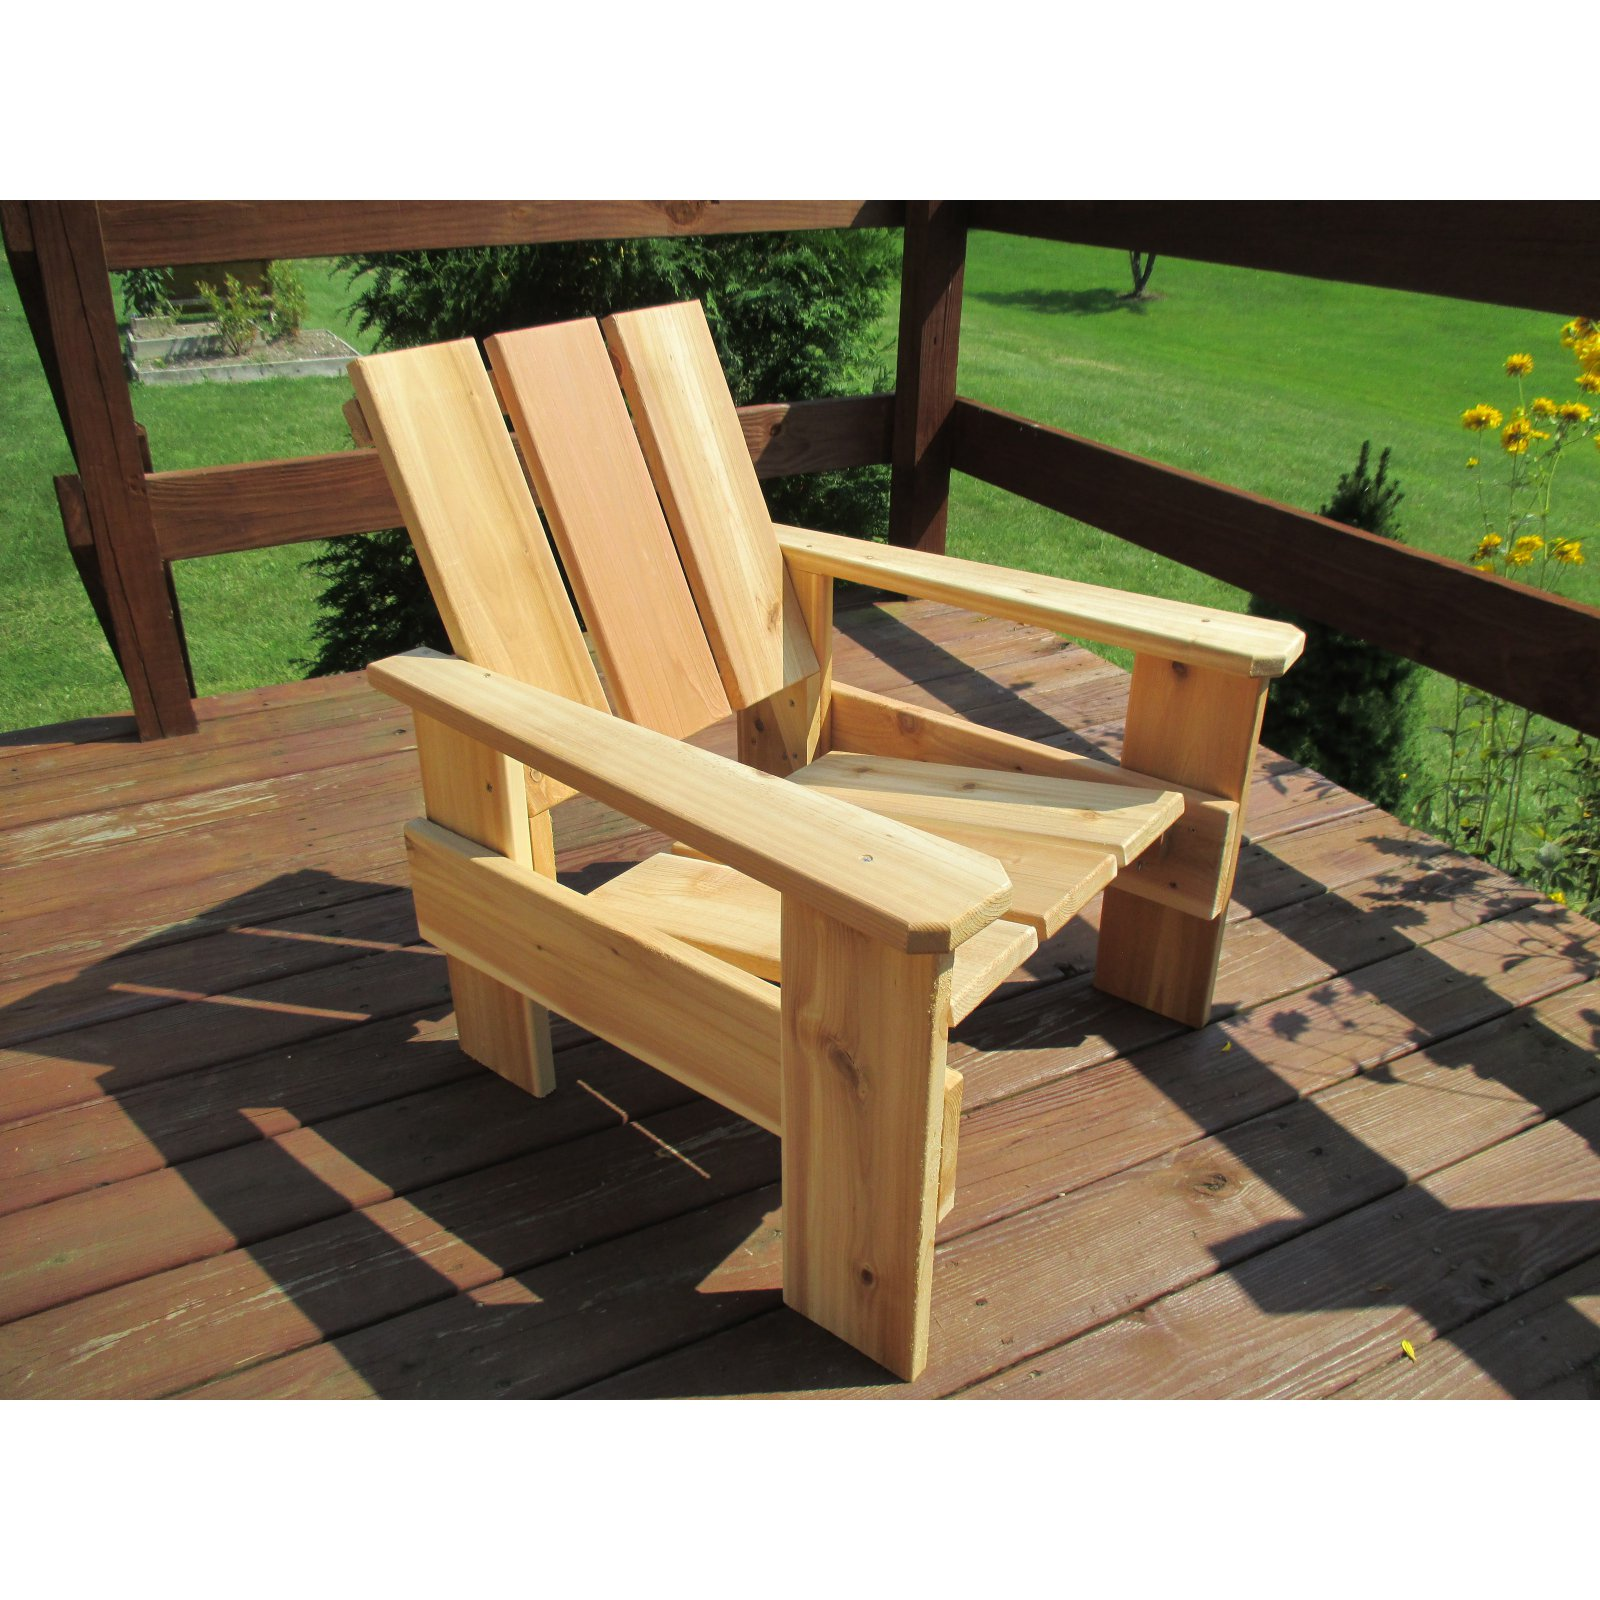 Infinite Cedar Adirondack Chair